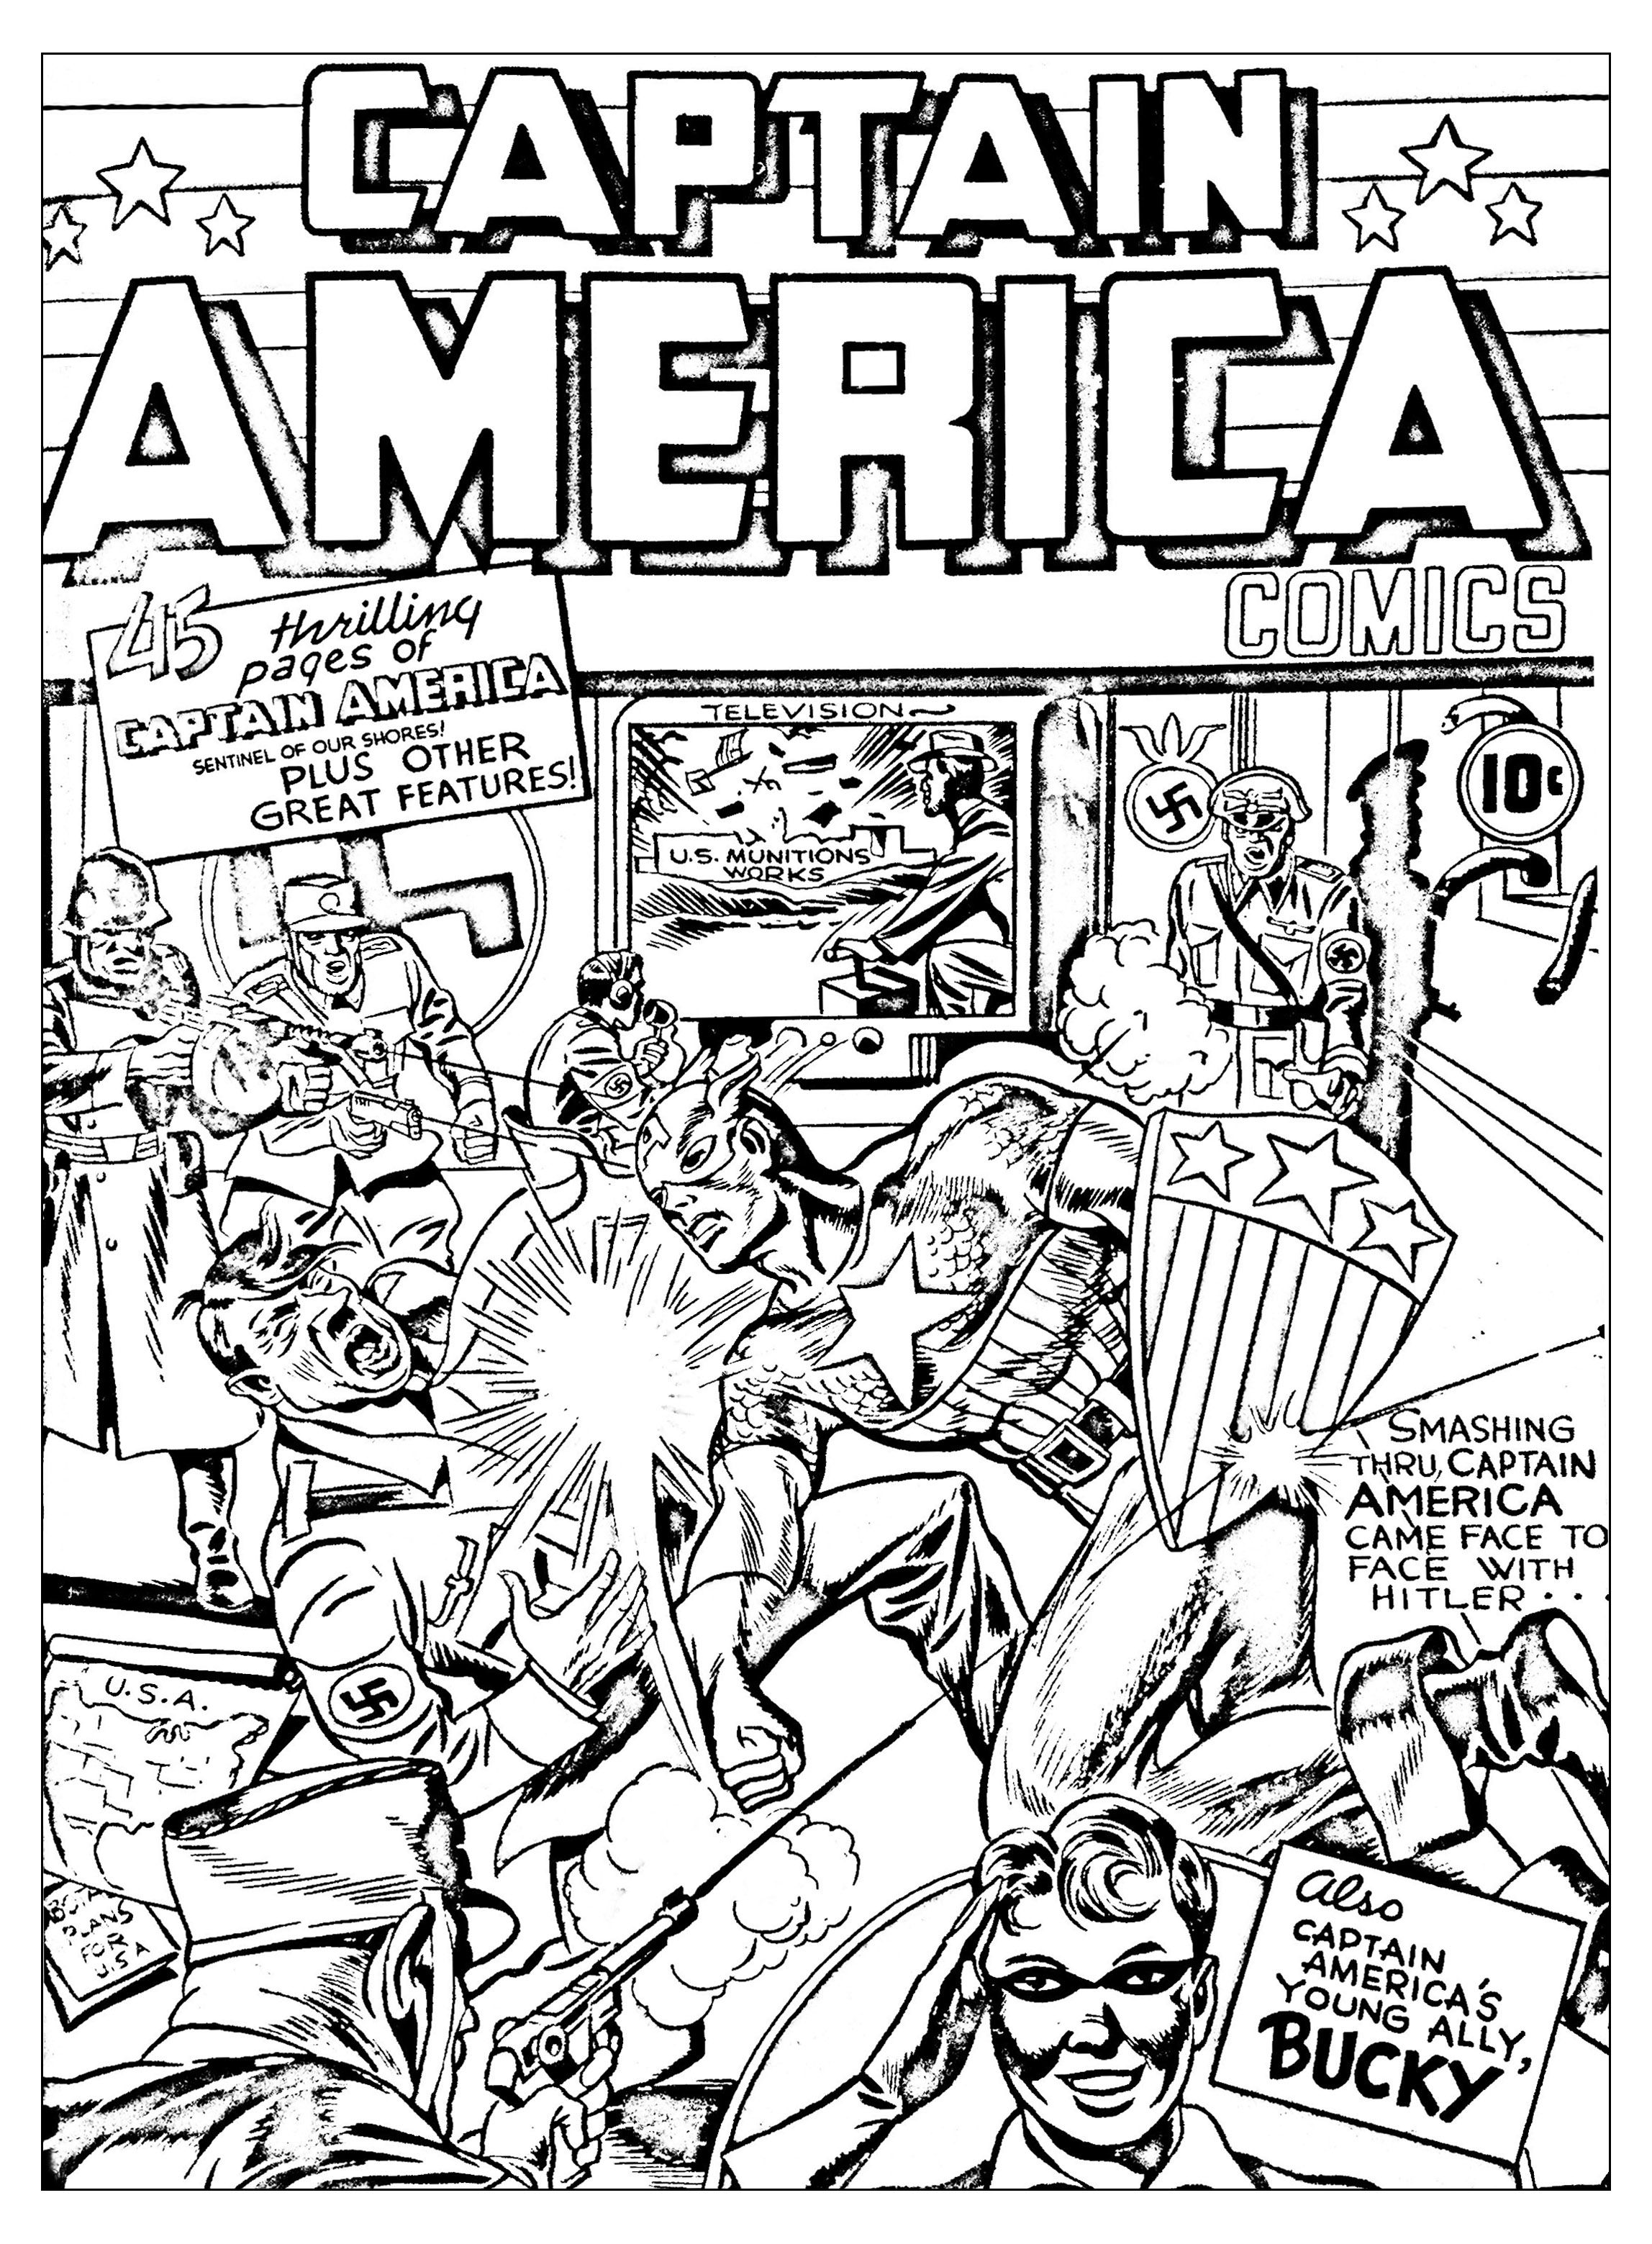 Captain America Vs Hitlerfrom The Gallery Books Coloring Pages